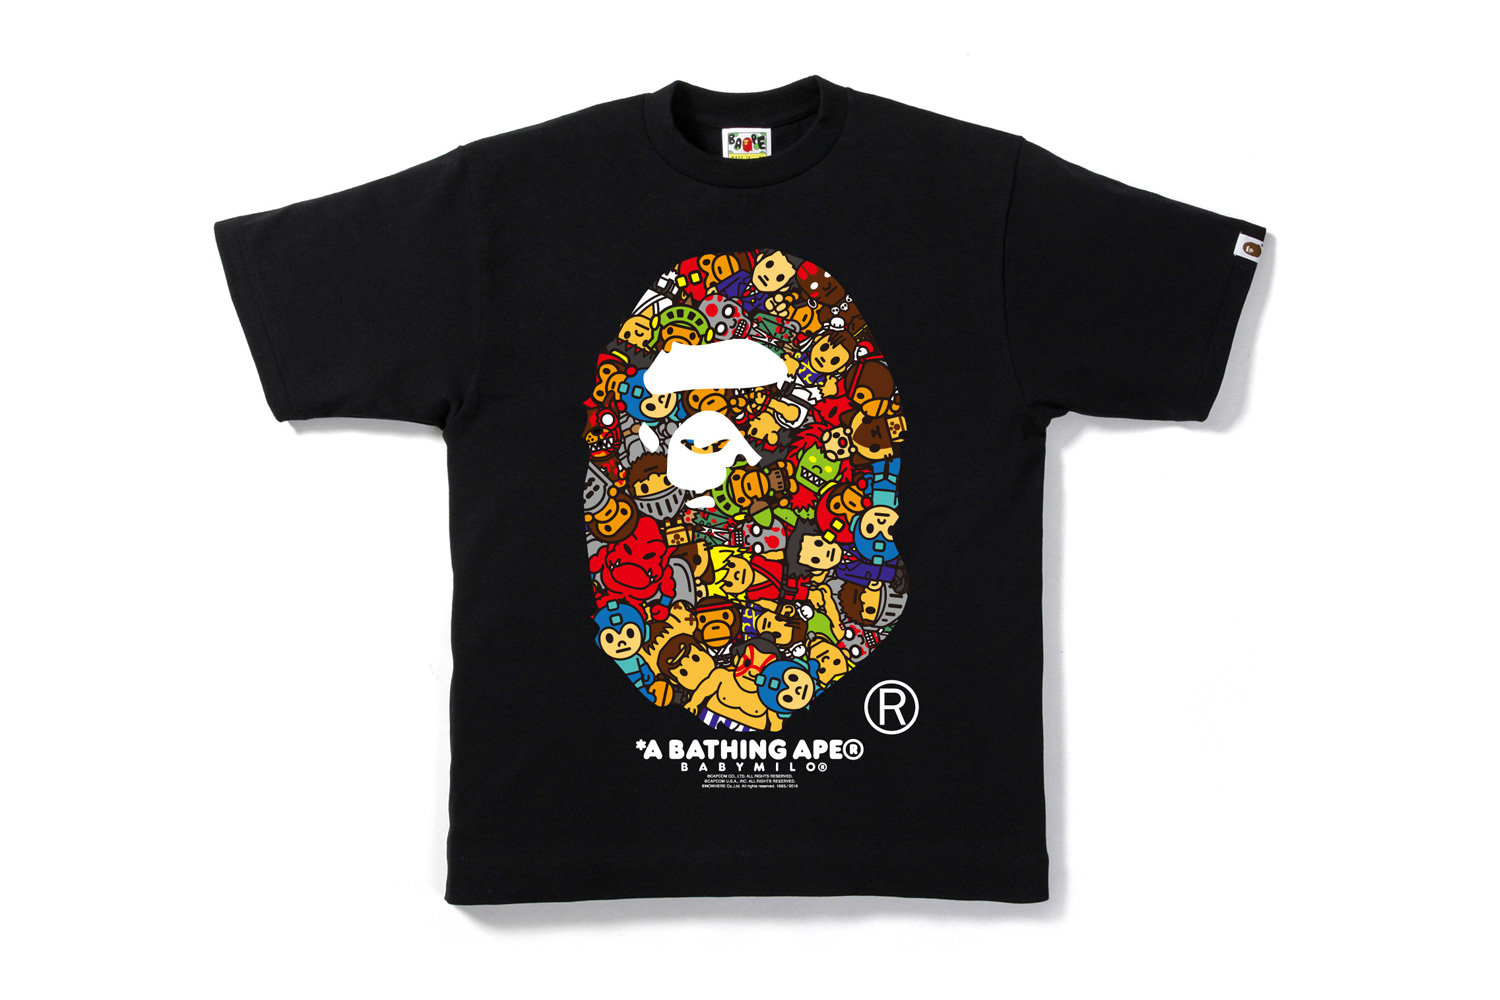 A Bathing Ape Teams up With CAPCOM for a Retro-Inspired Collection